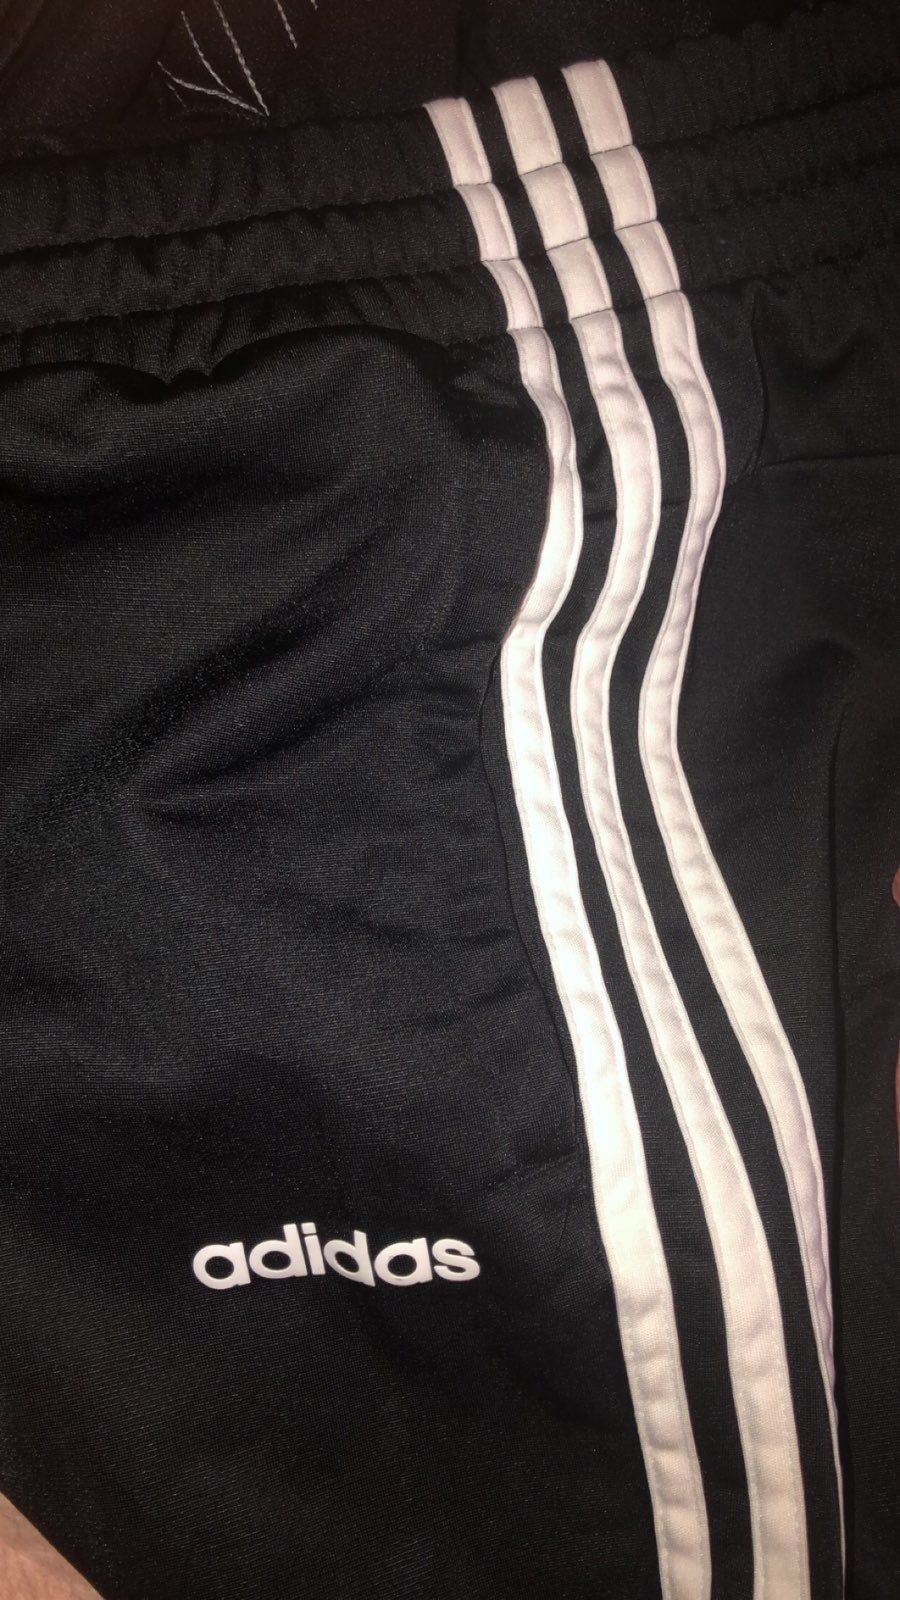 How to Wash Adidas Leggings & Clothing Climacool & Climalite